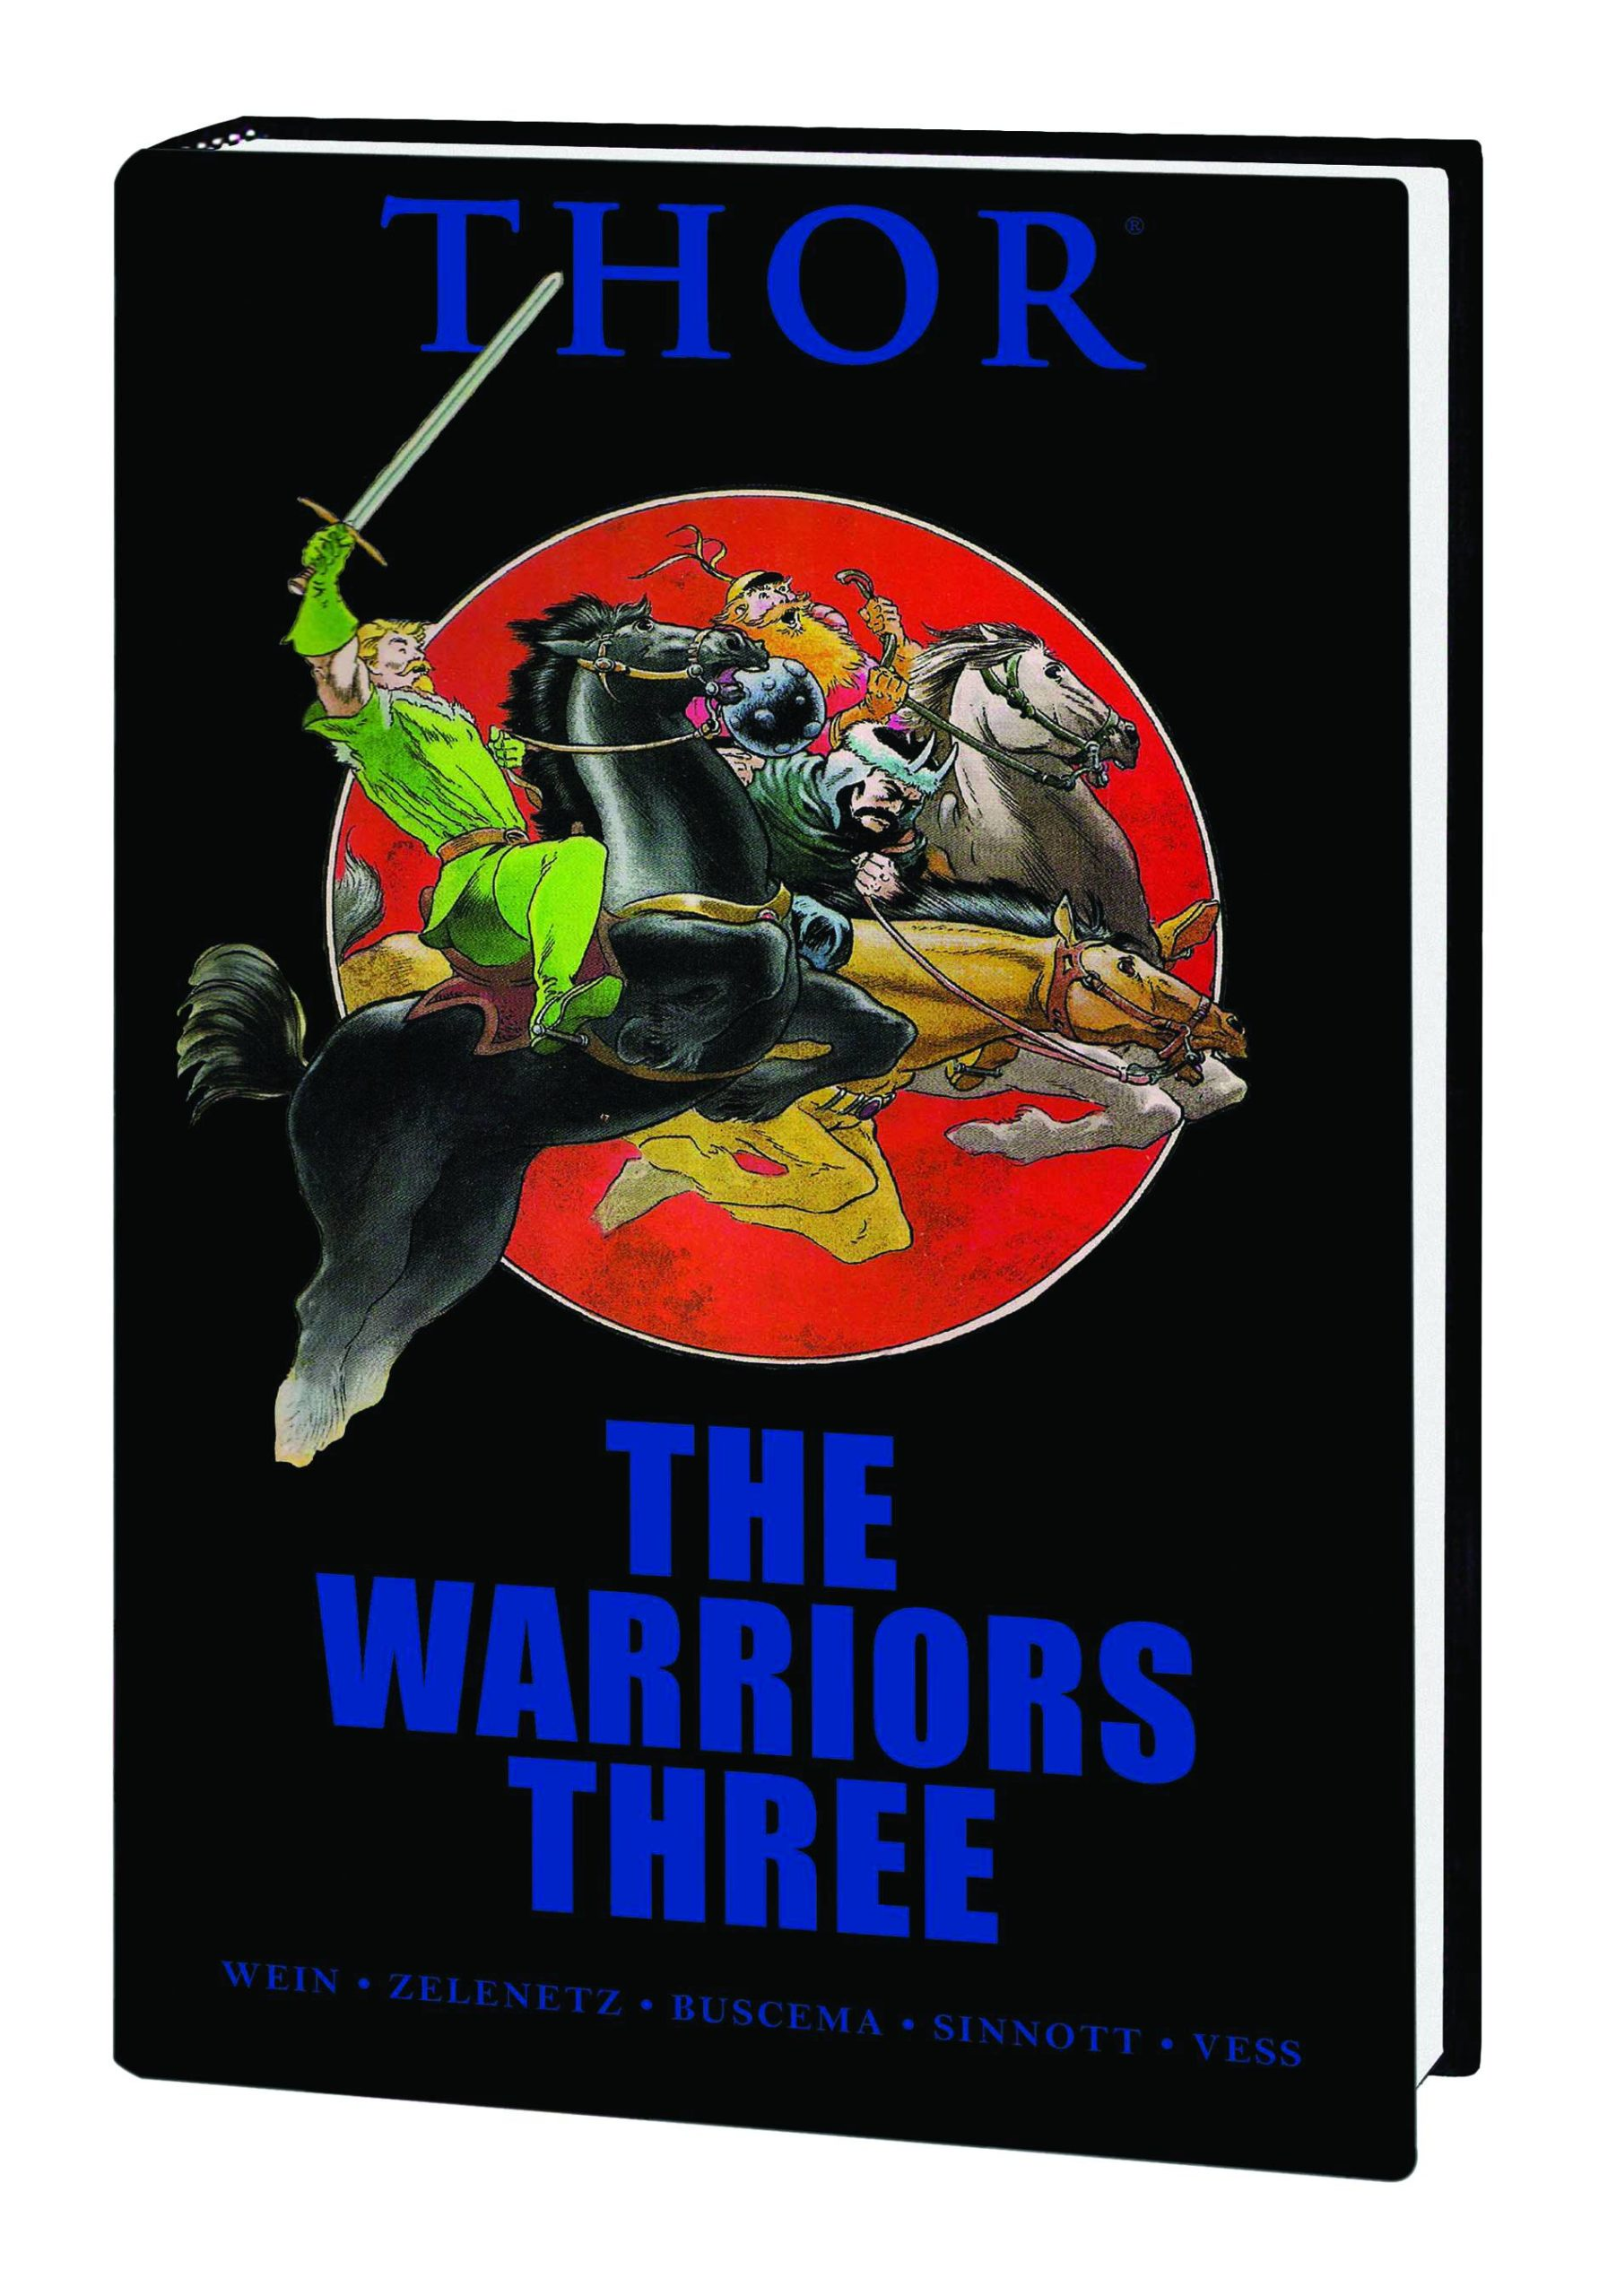 THOR WARRIORS THREE PREM HC